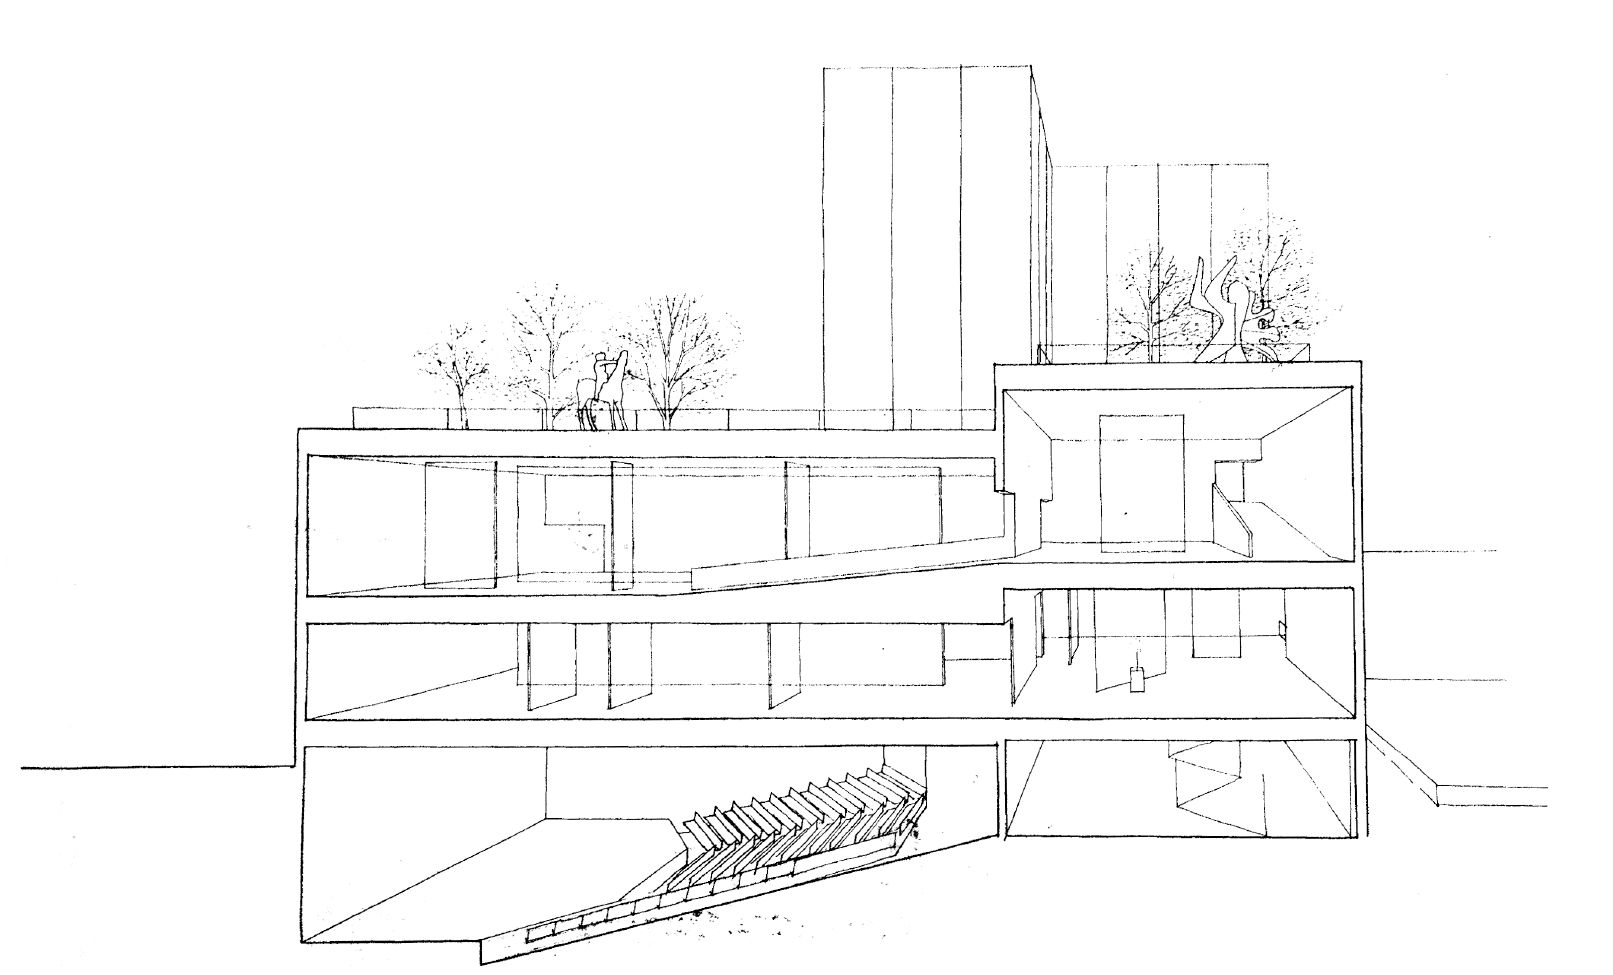 Cross-sectional drawing of the Walker Art Center auditorium and galleries, circa 1969 (Edward Larrabee Barnes, architect, 1971)